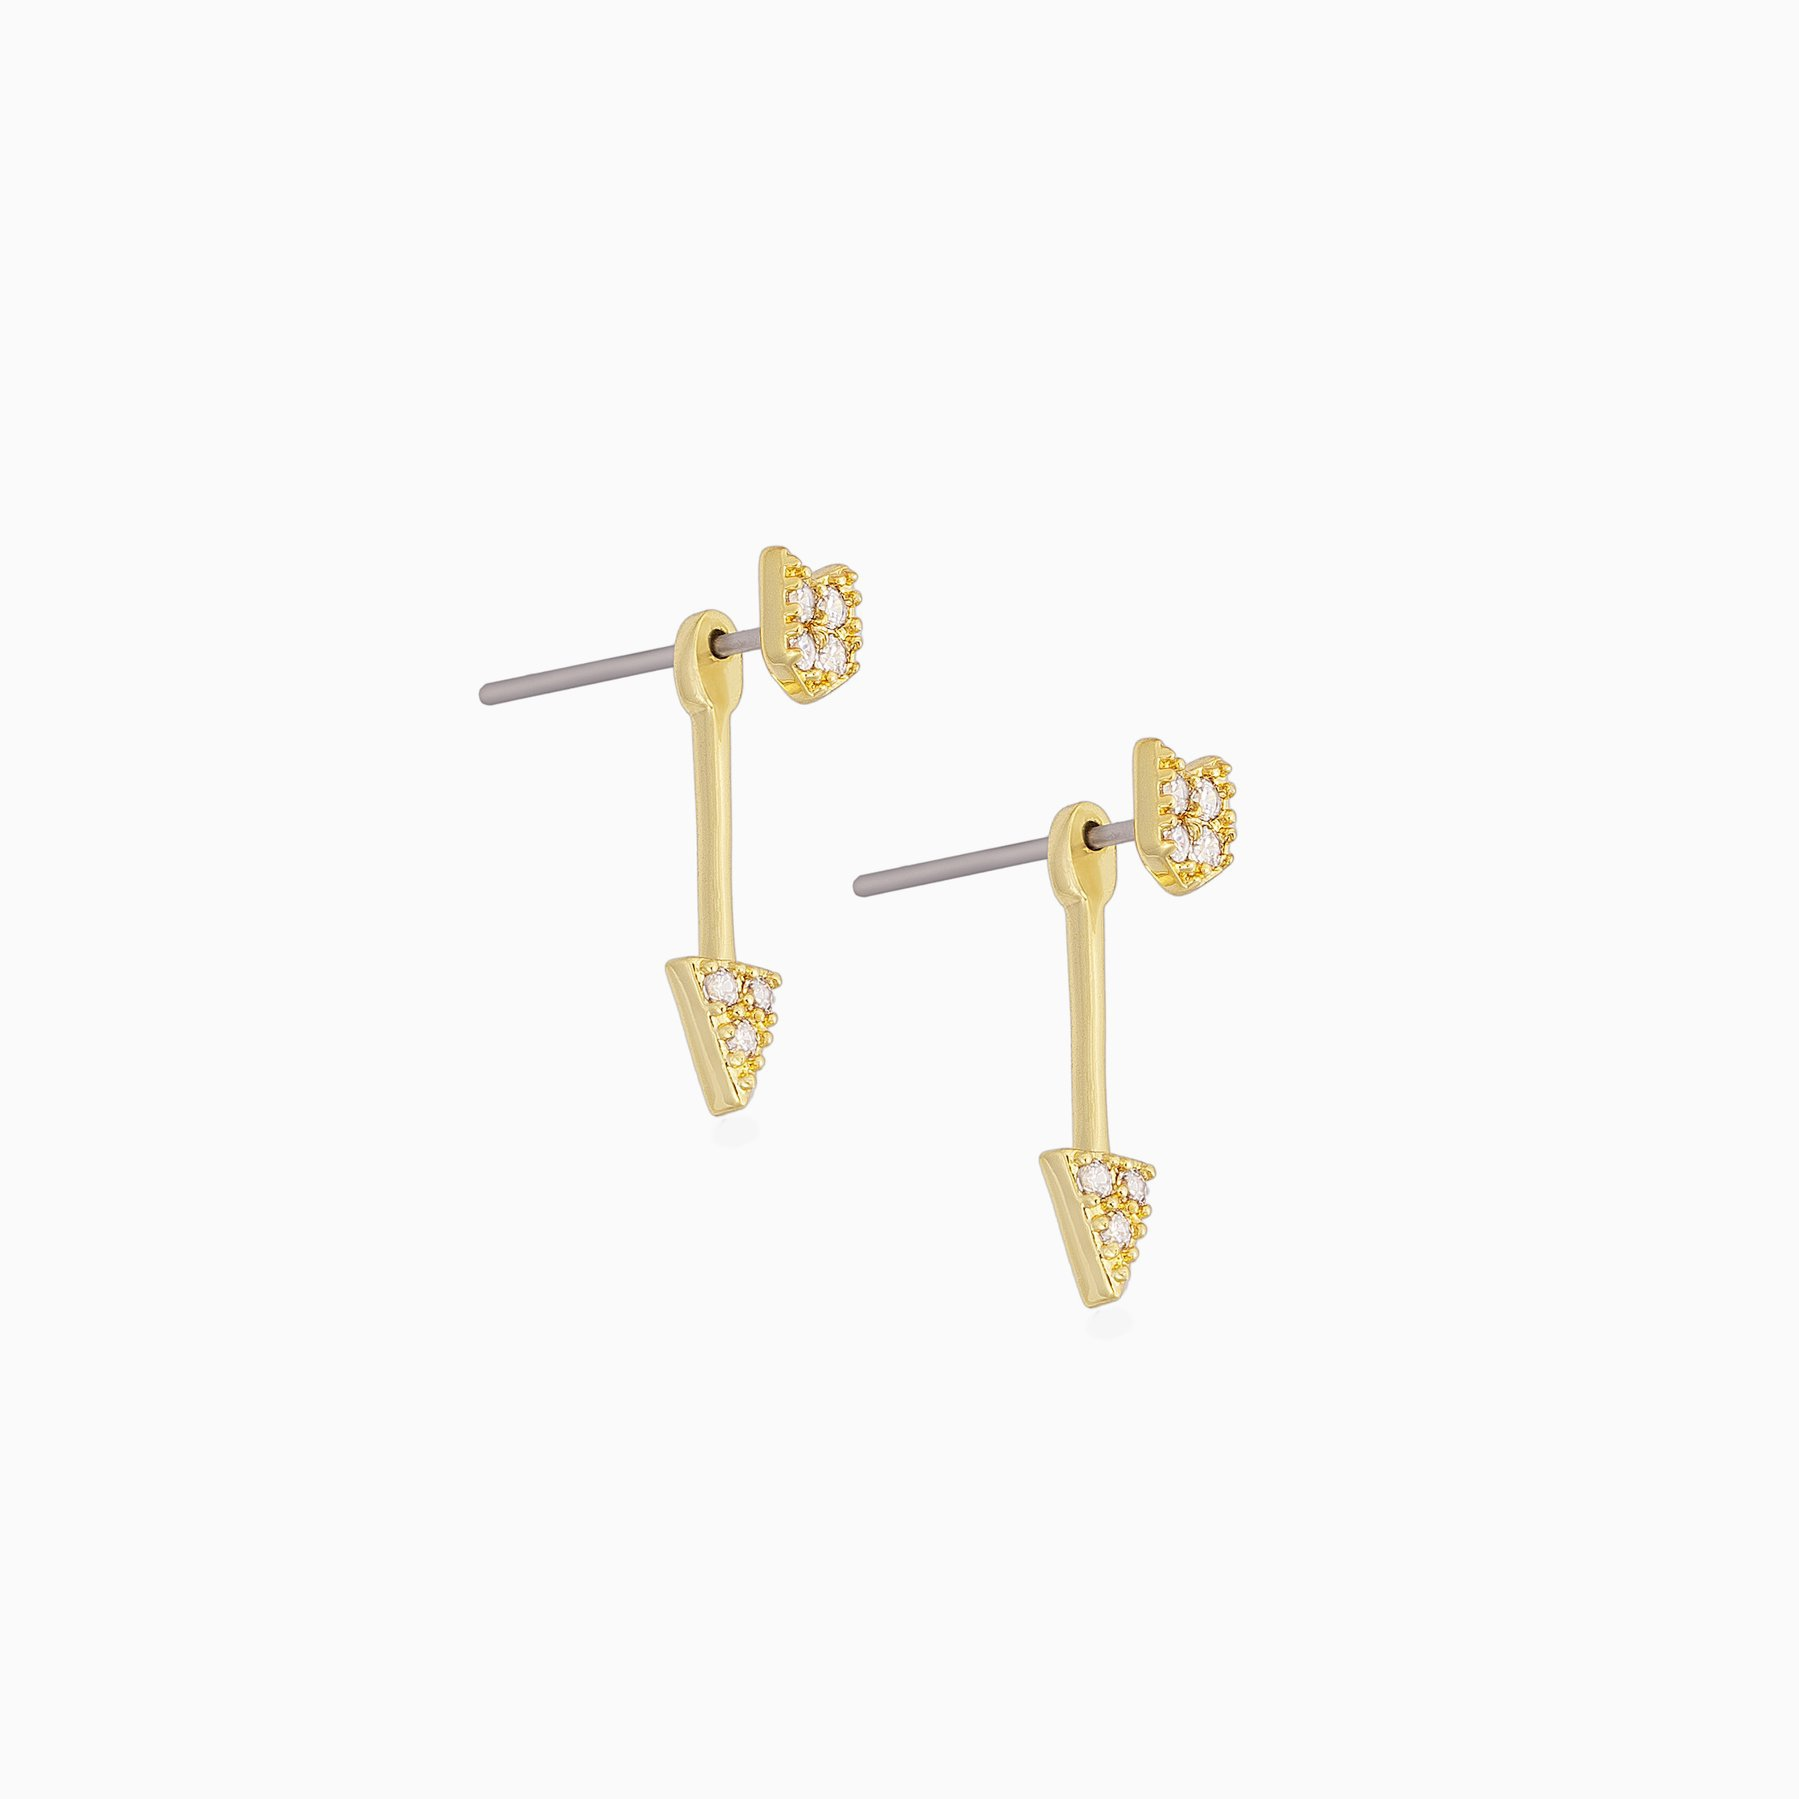 Uncommon James: On The Map Ear Jacket Earrings - Gold